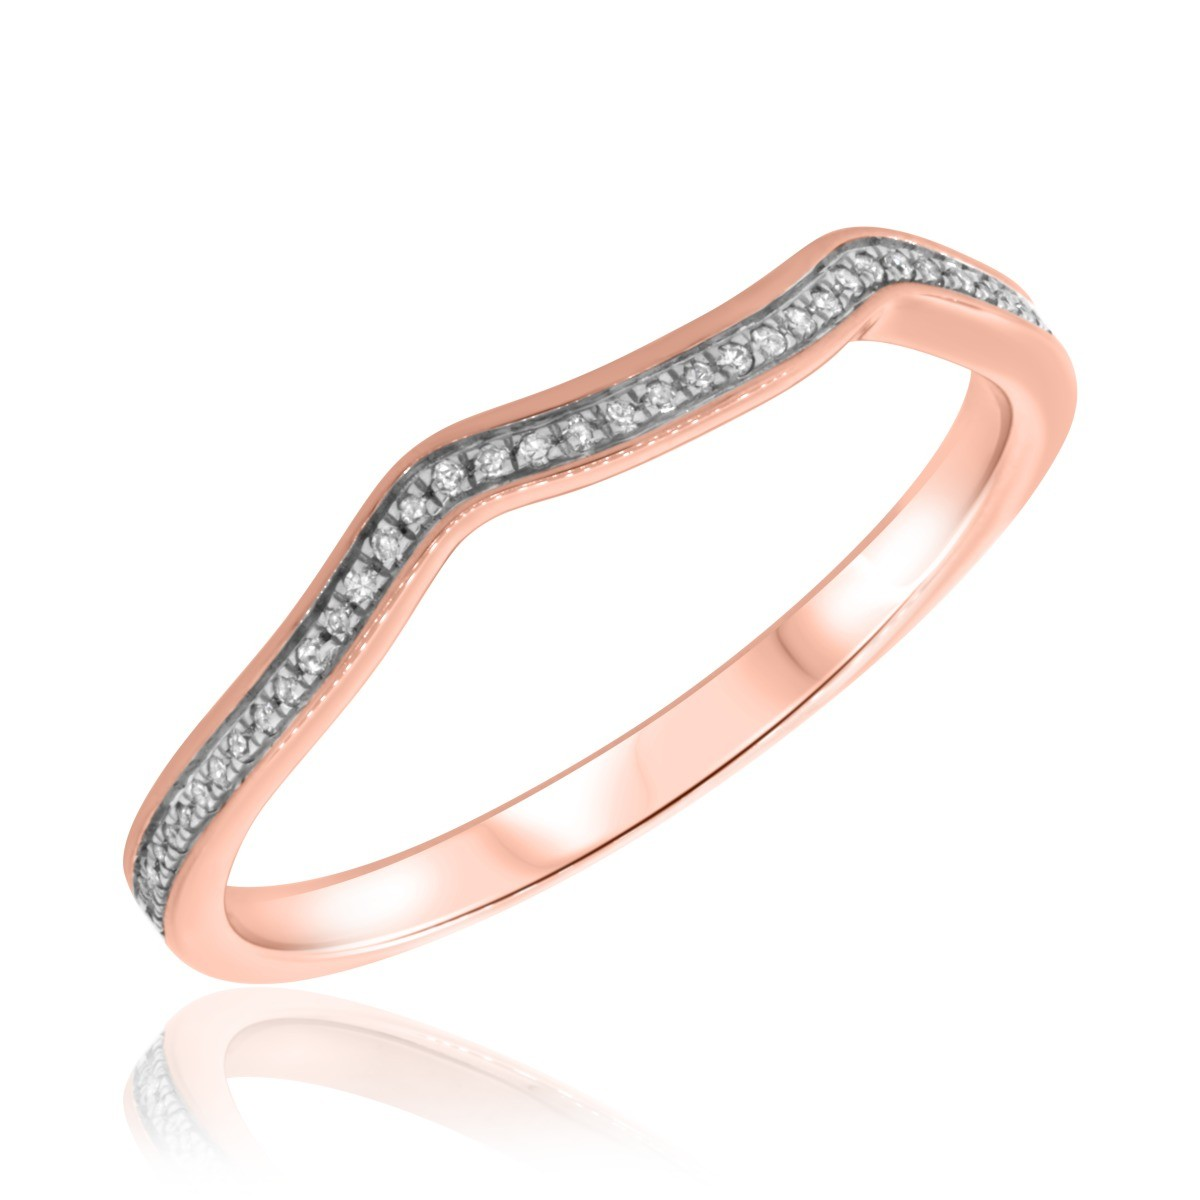 1/10 CT. T.W. Diamond Ladies Wedding Band  14K Rose Gold